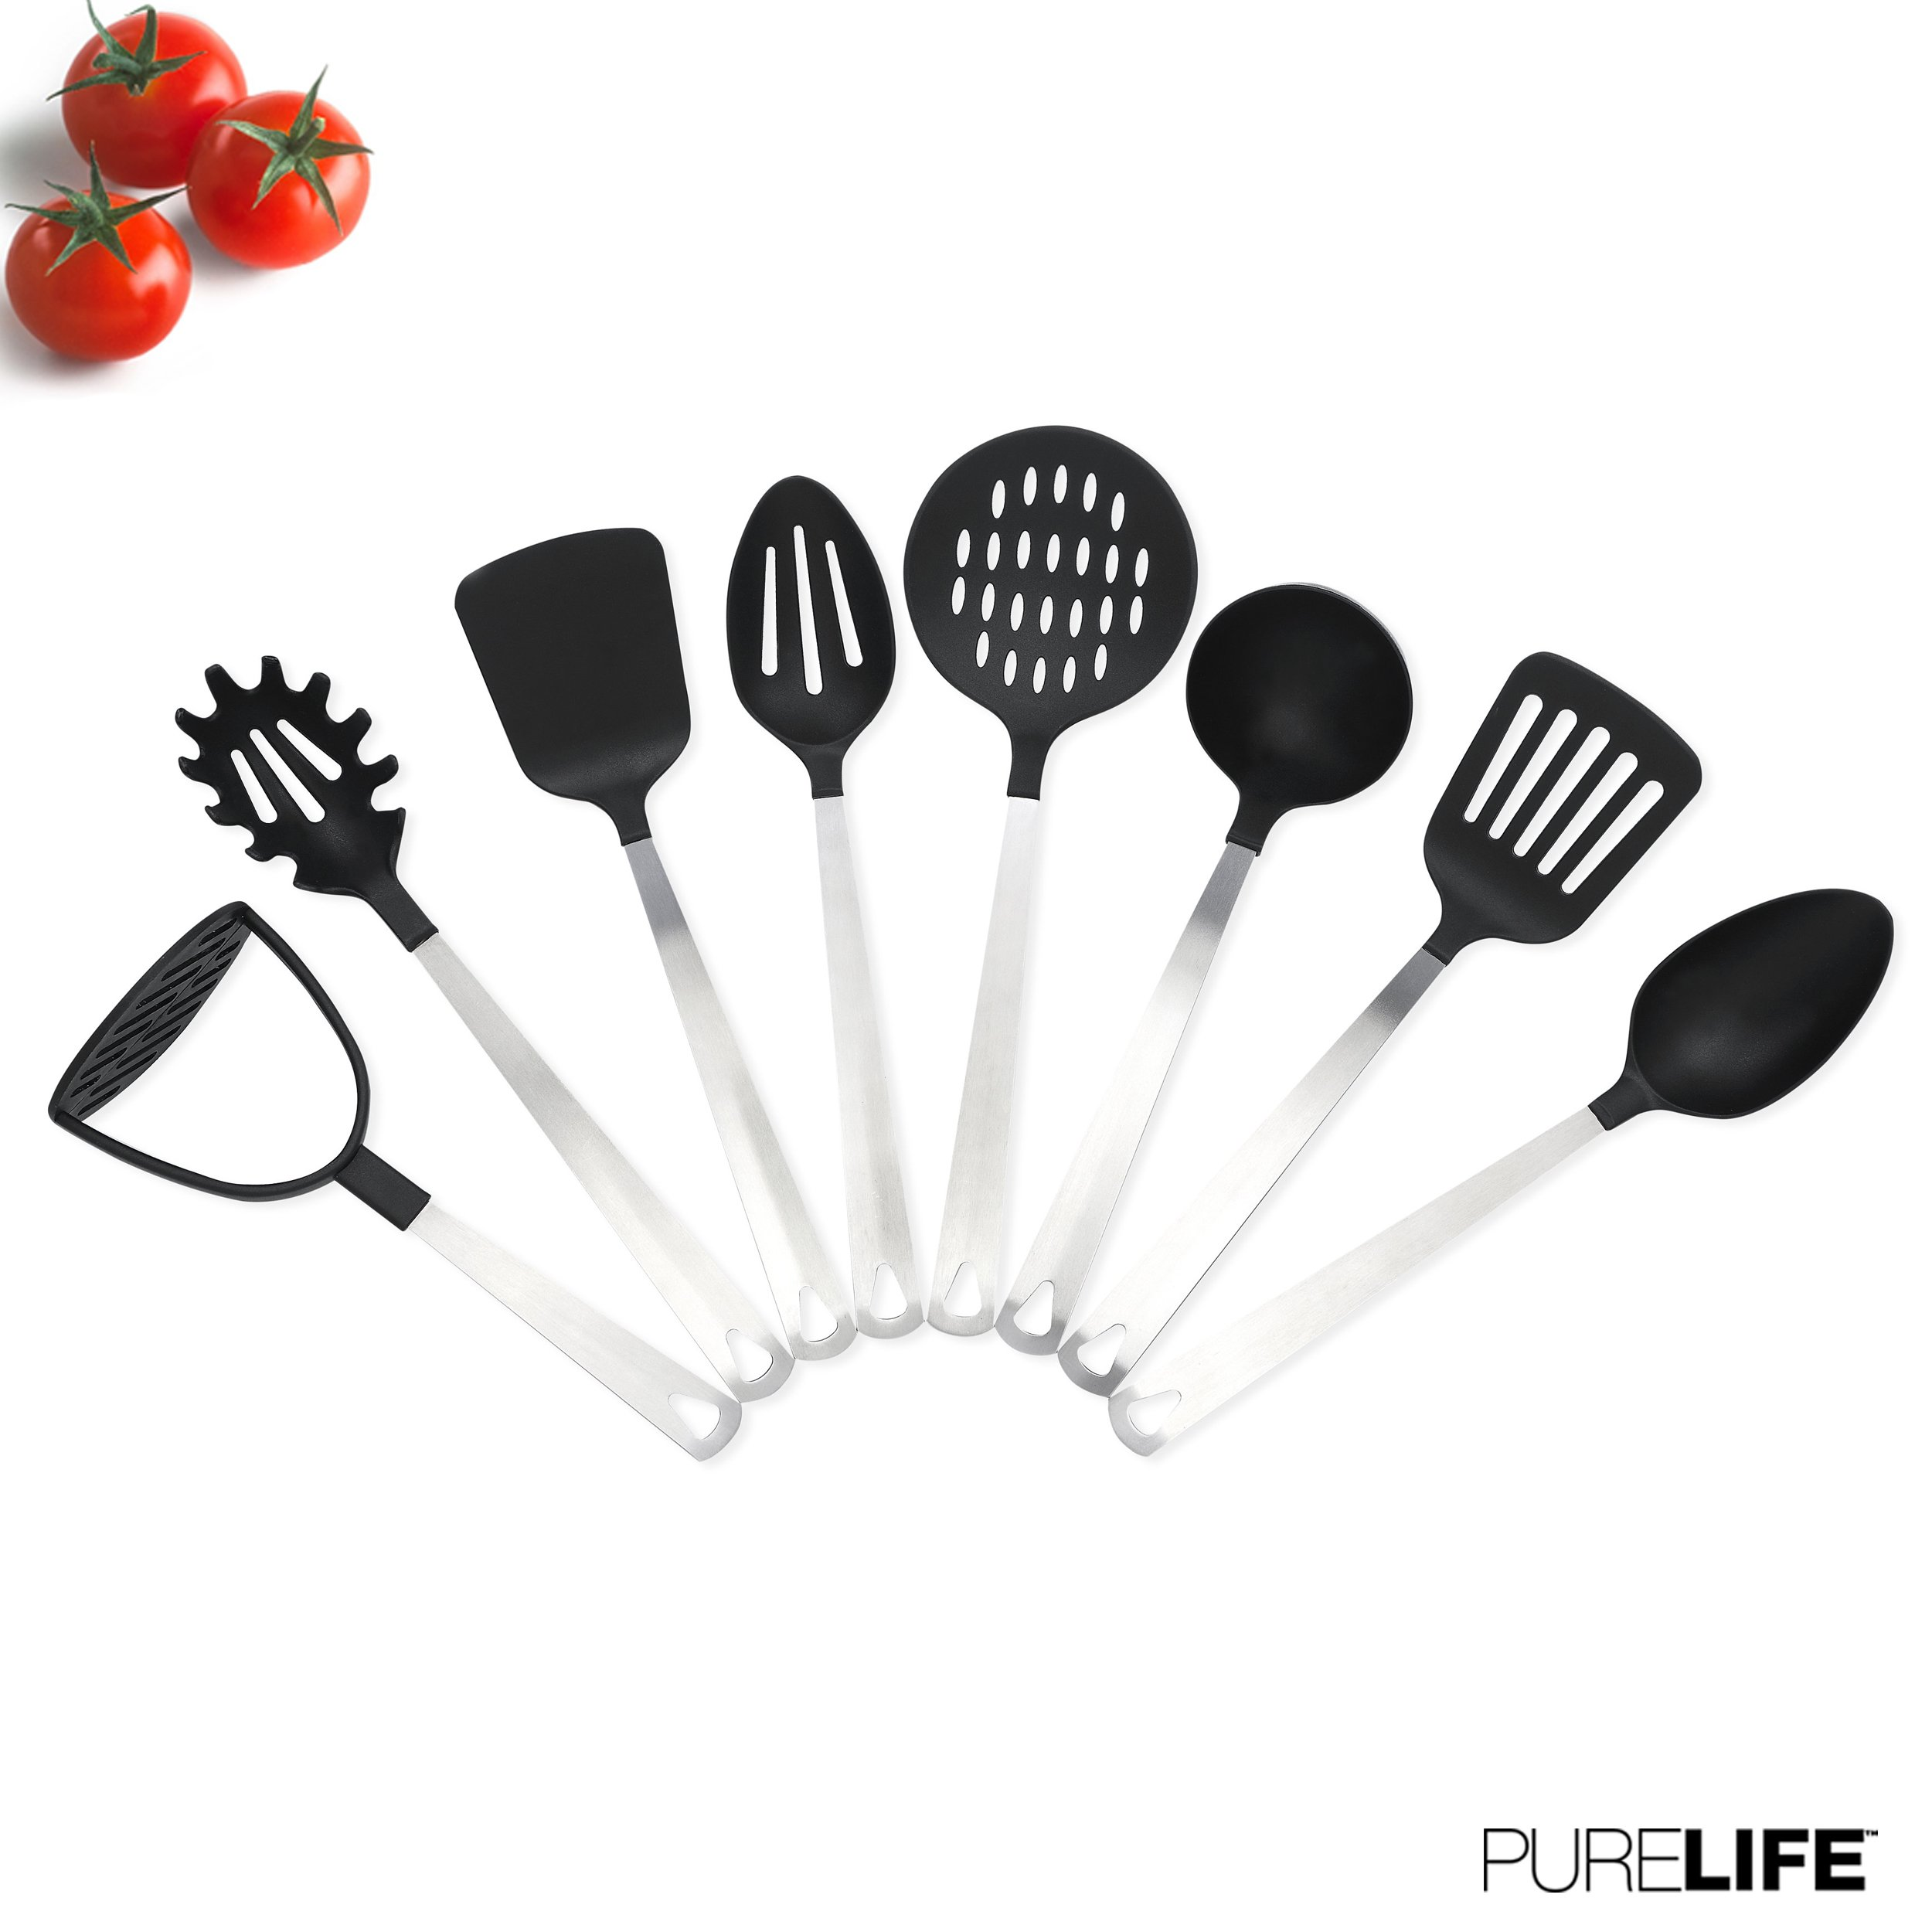 Kitchen Utensil Set 8 Pc by PureLife - Stainless Steel Cooking Set W/Nylon Heat Resistant | Include Spaghetti Server, Potato Masher, Serving Spoon, Turner, Ladle, Skimmer, Spatula & Slotted Spoon